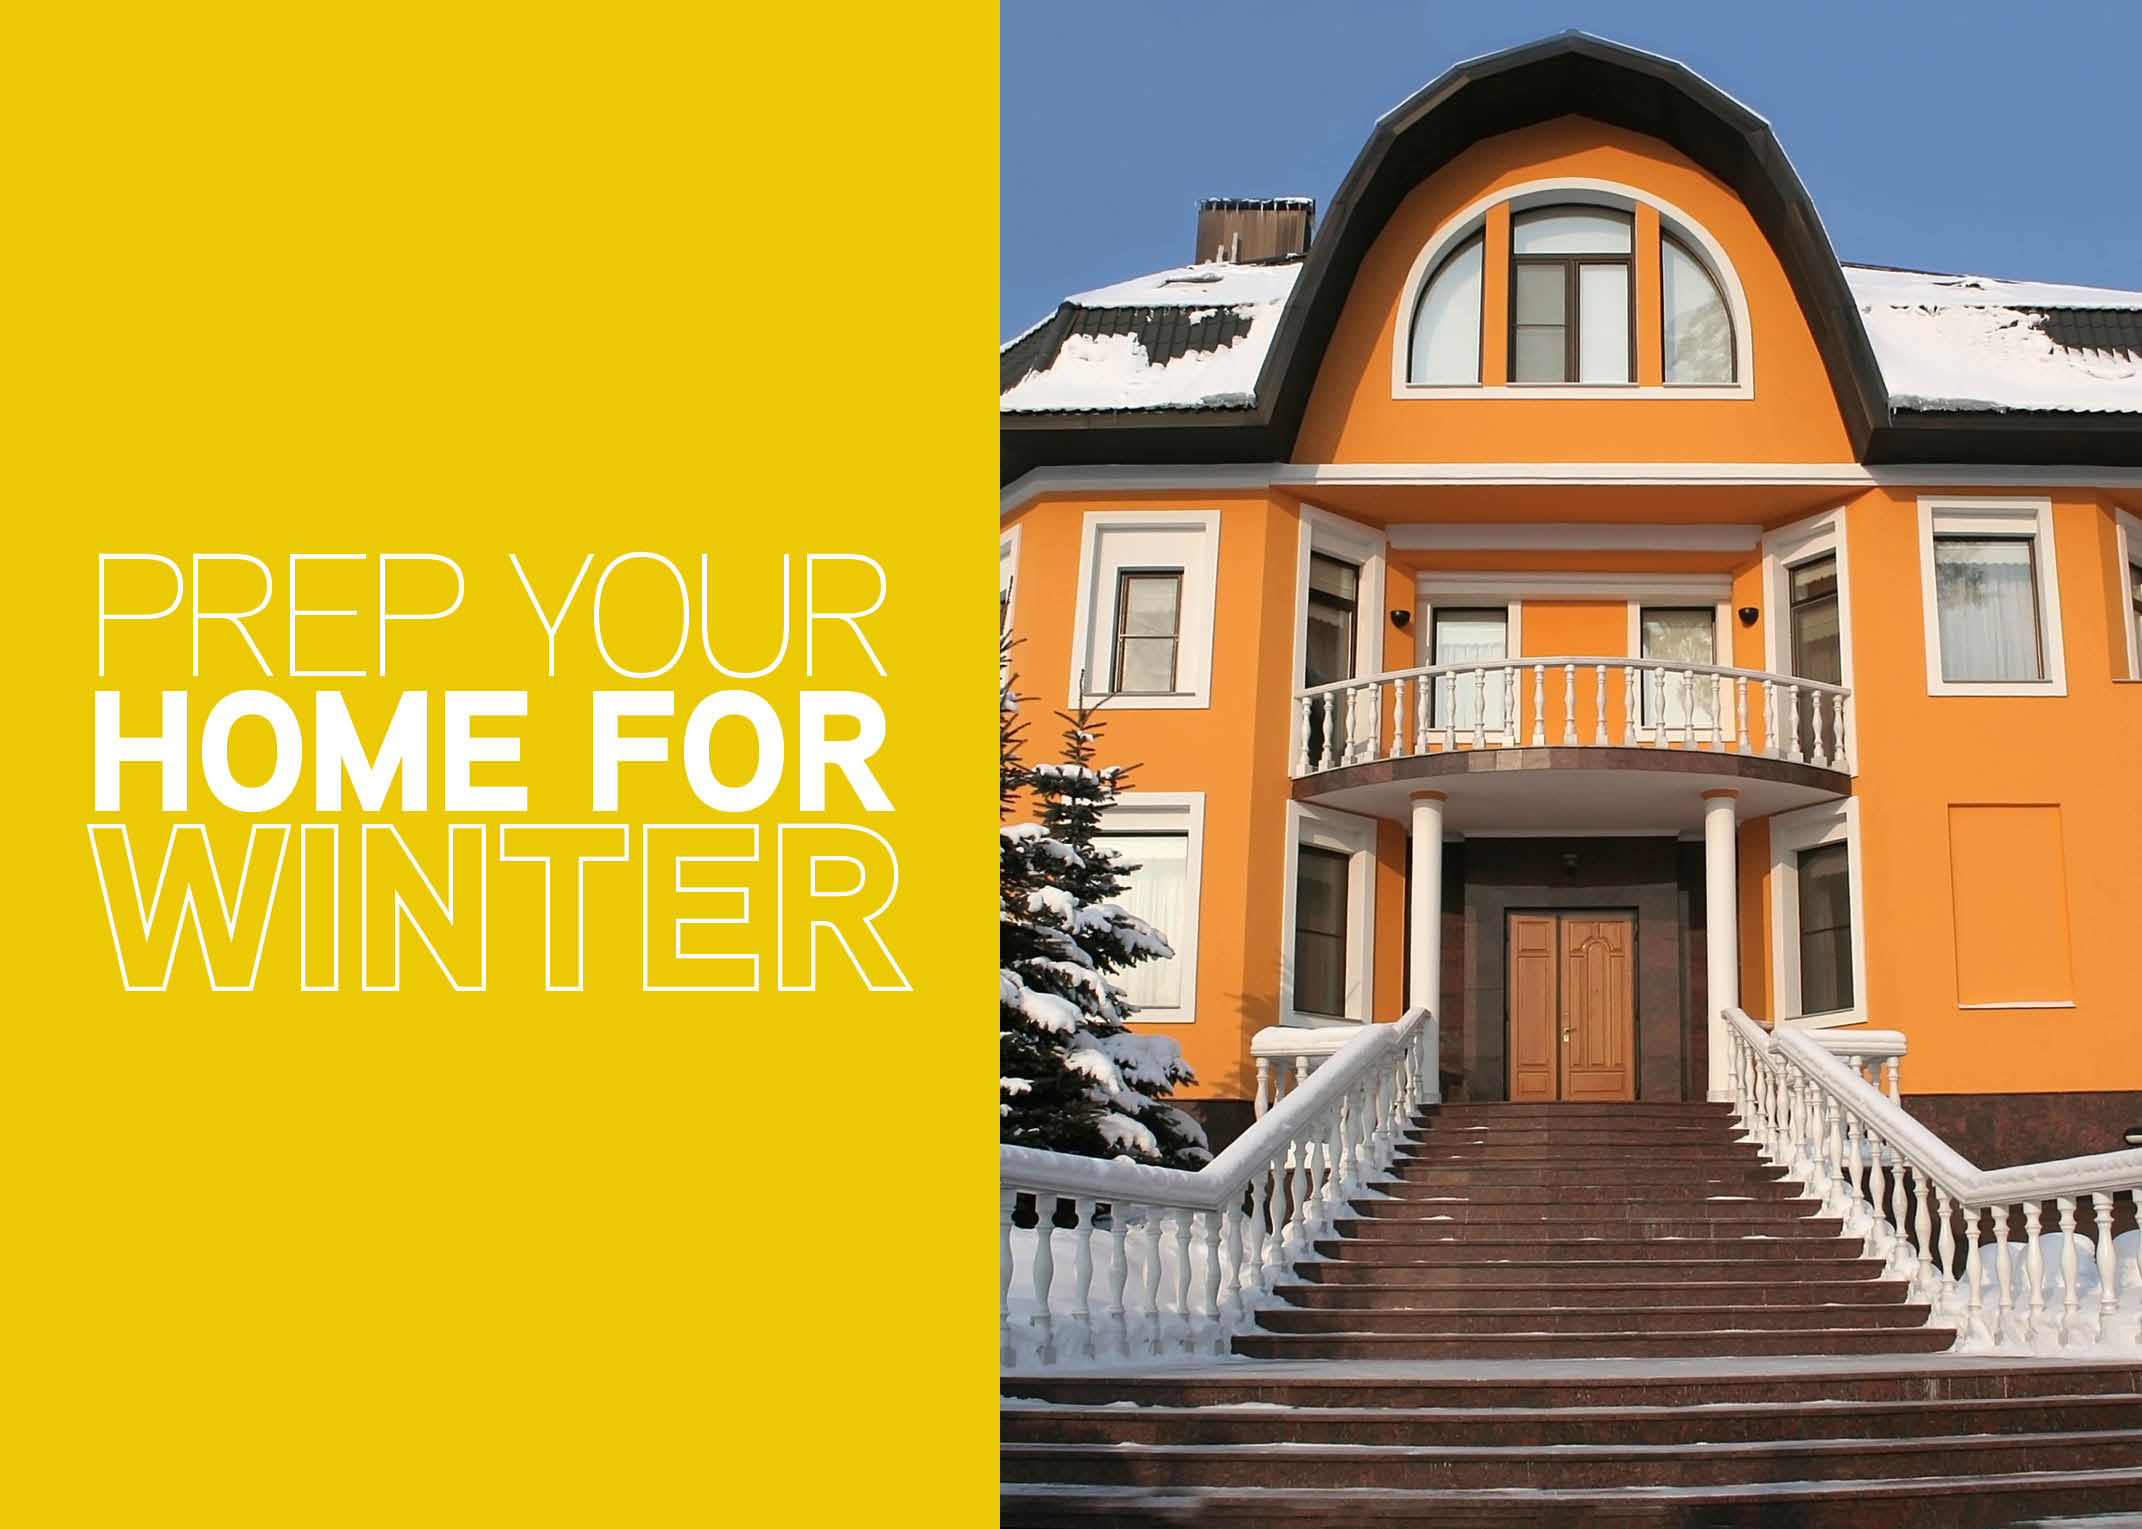 prep your home for winter